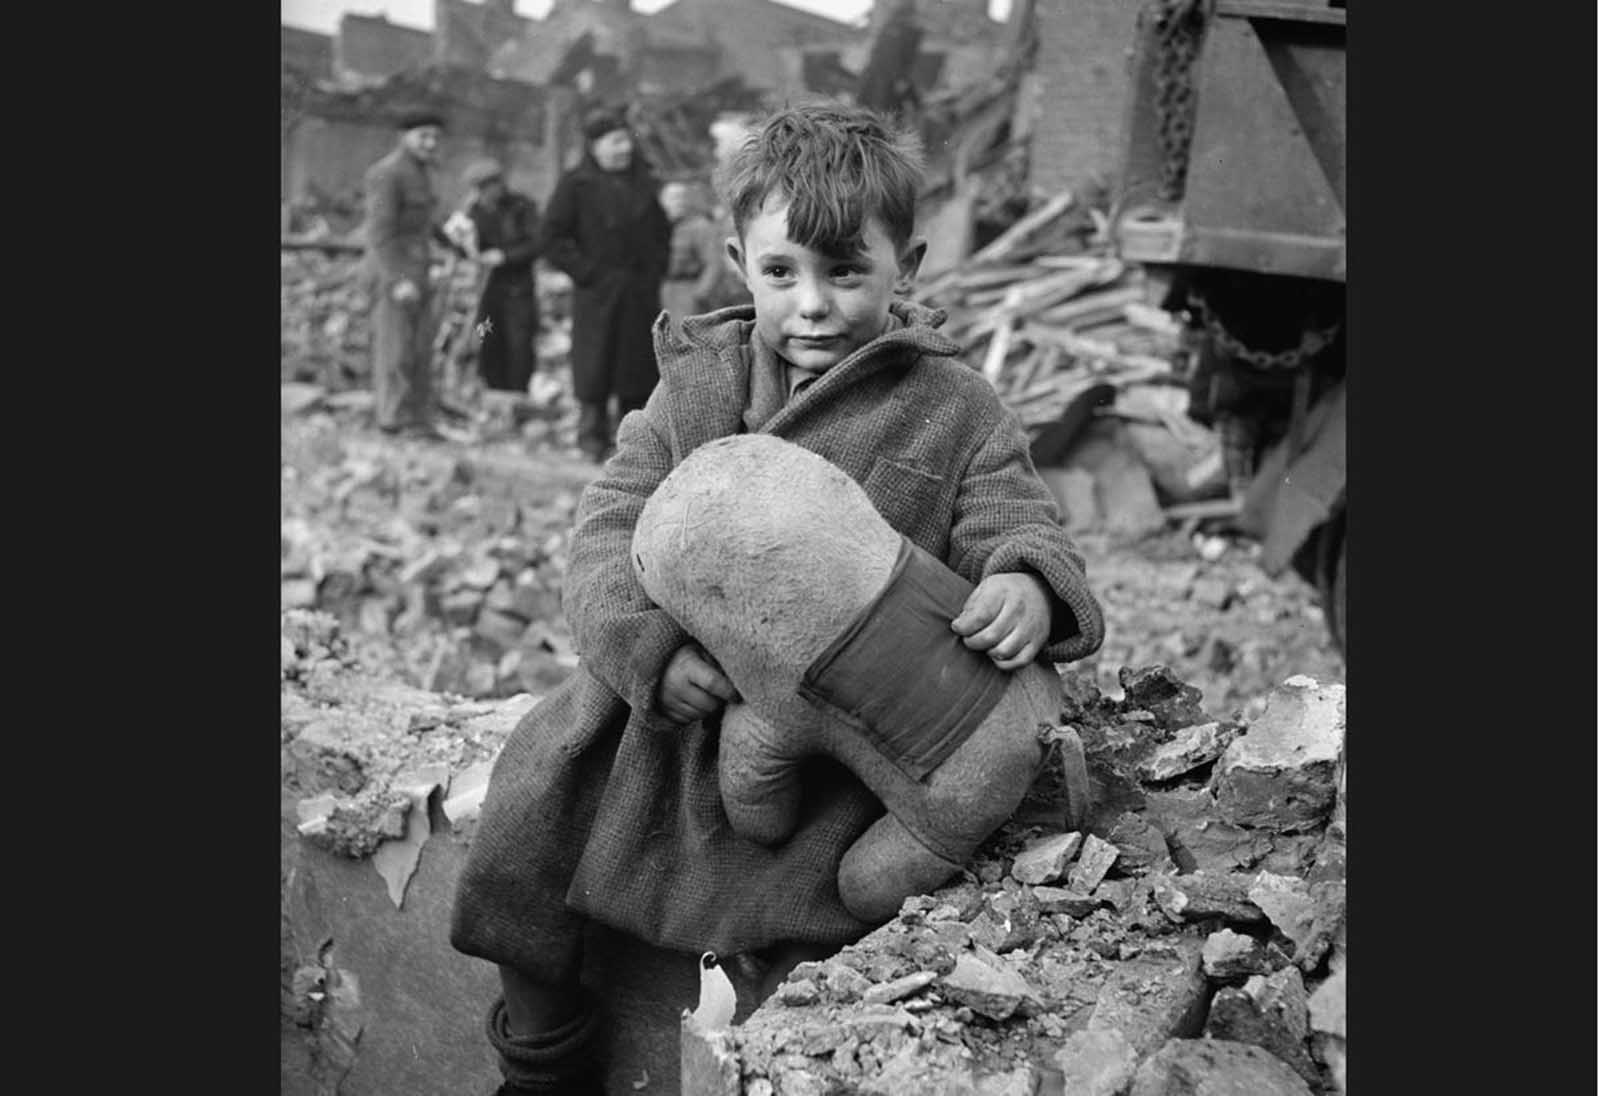 An abandoned boy, holding a stuffed toy animal amid ruins following a German aerial bombing of London in 1940.